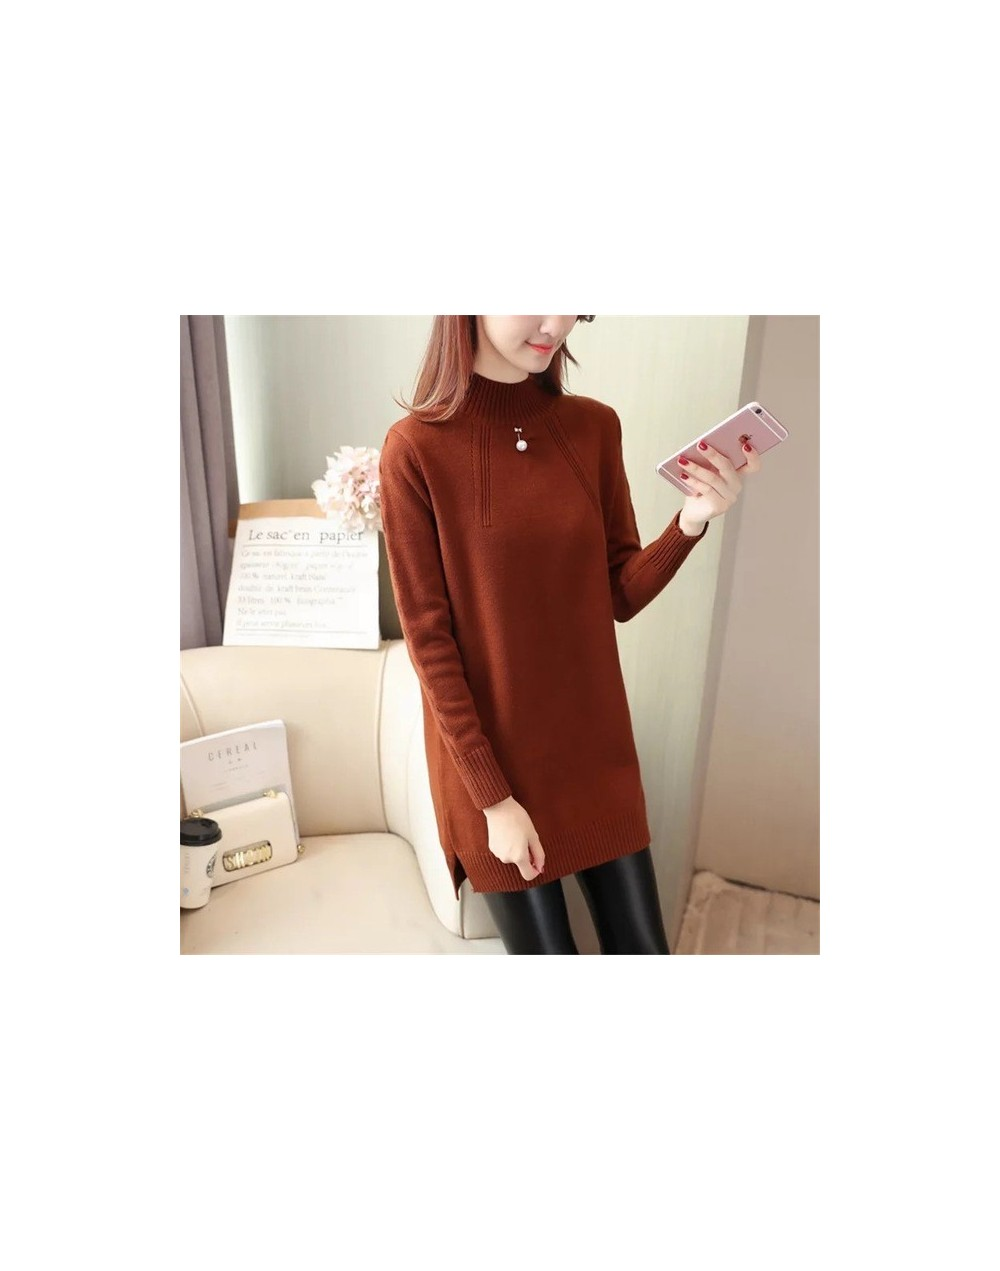 New Fashion 2019 Women Autumn Winter Embroidery Rabbit Brand Long Sweater Dress Pullovers Warm Sweaters Pullover Lady - Red ...